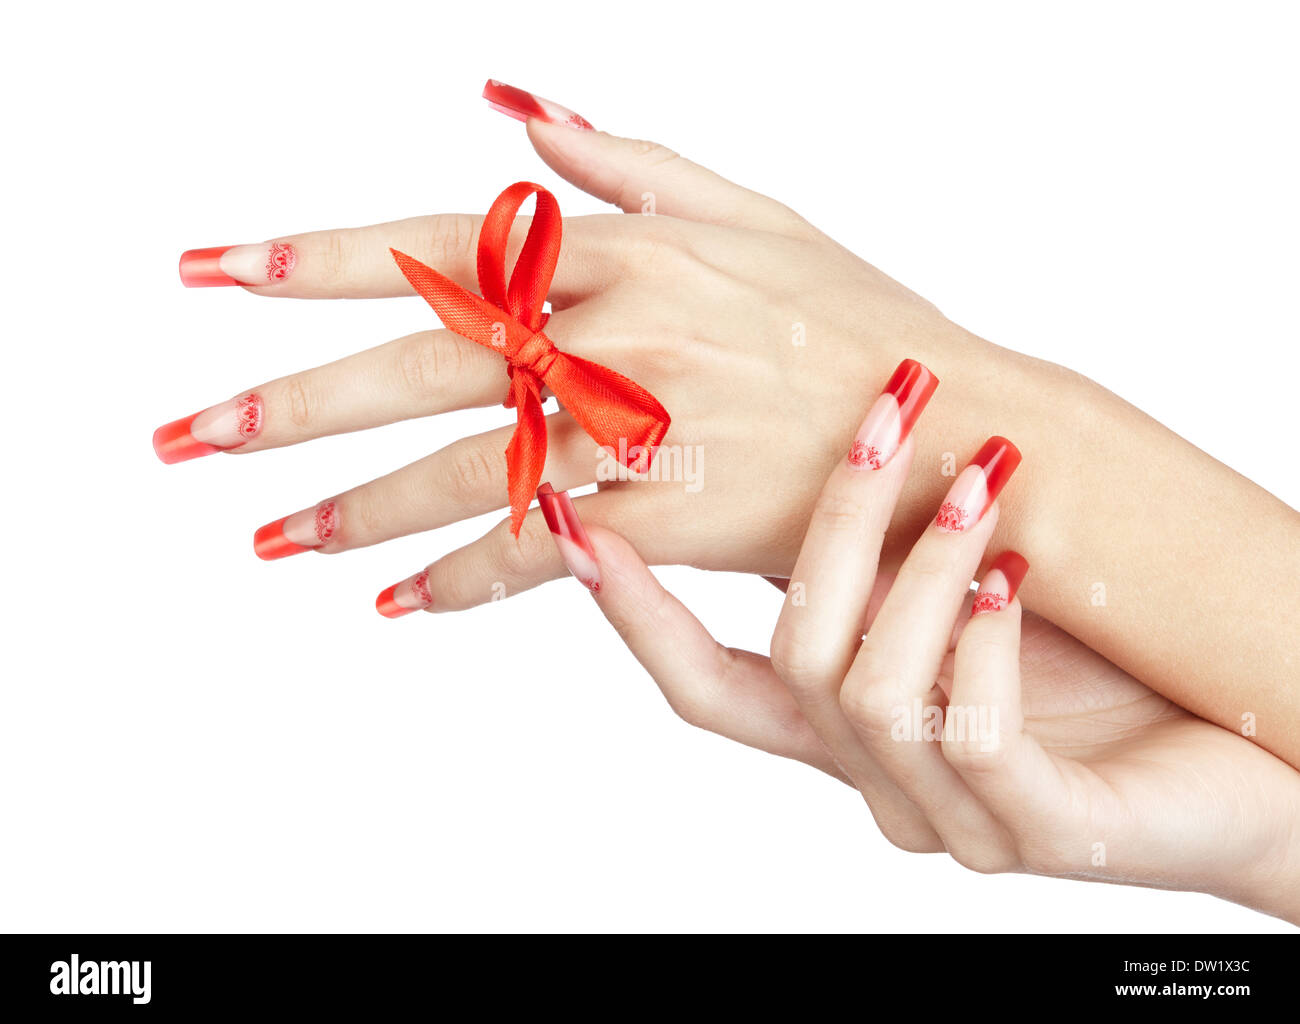 Hands with red french acrylic nails manicure and painting with bow ...